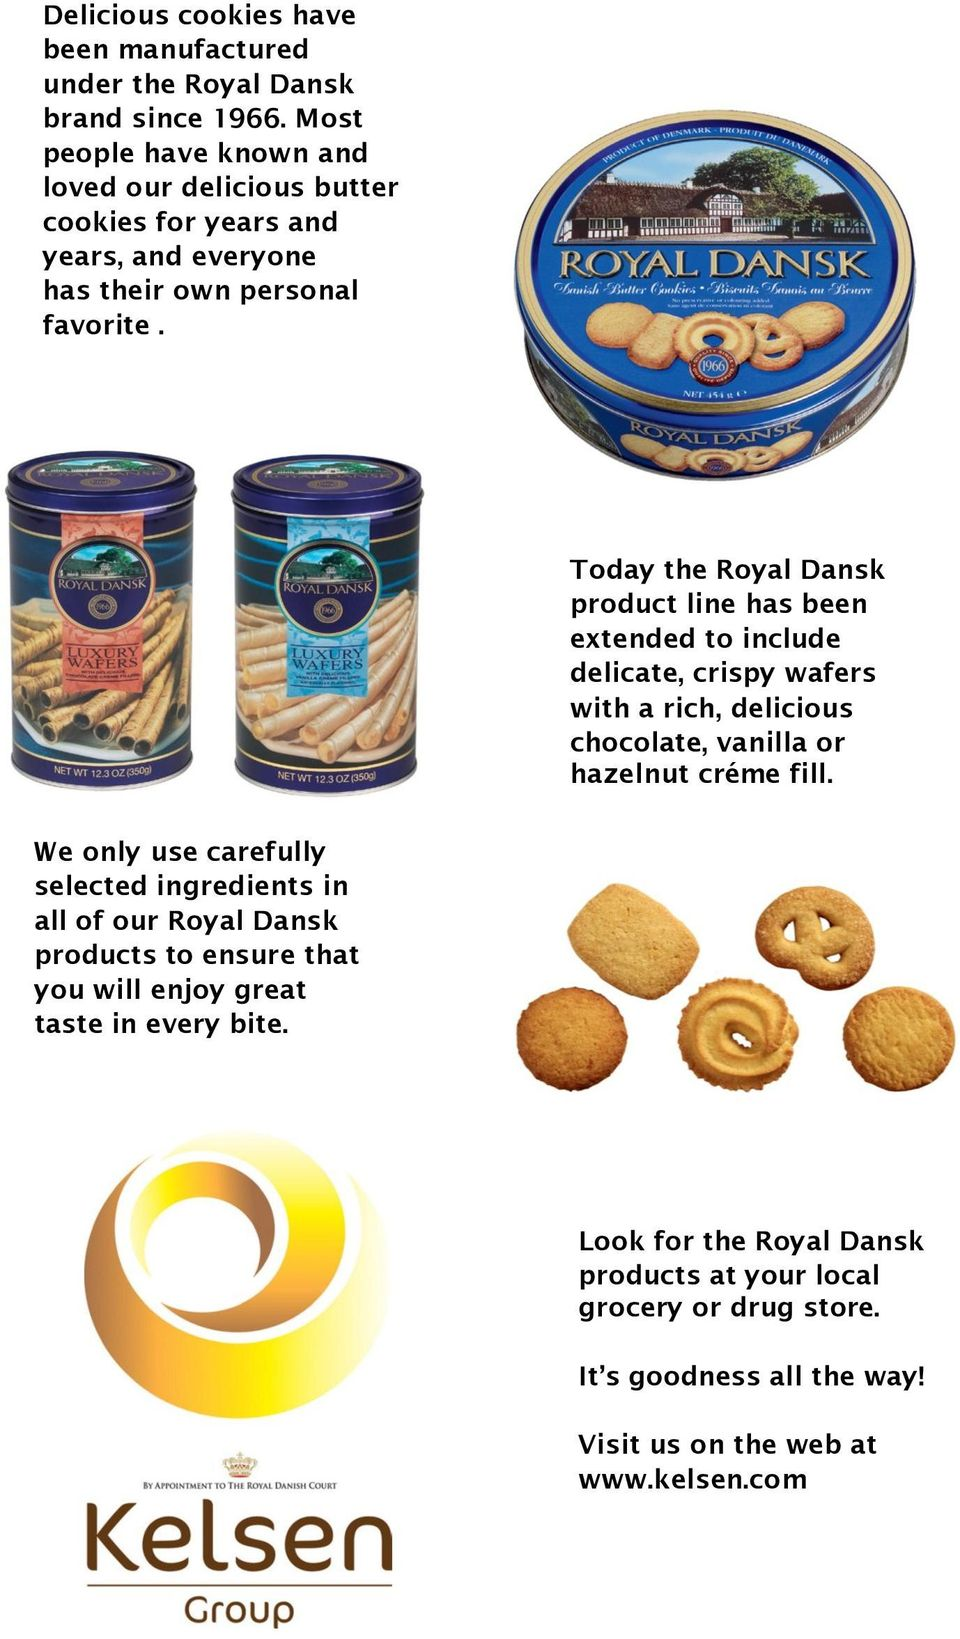 Today the Royal Dansk product line has been extended to include delicate, crispy wafers with a rich, delicious chocolate, vanilla or hazelnut créme fill.